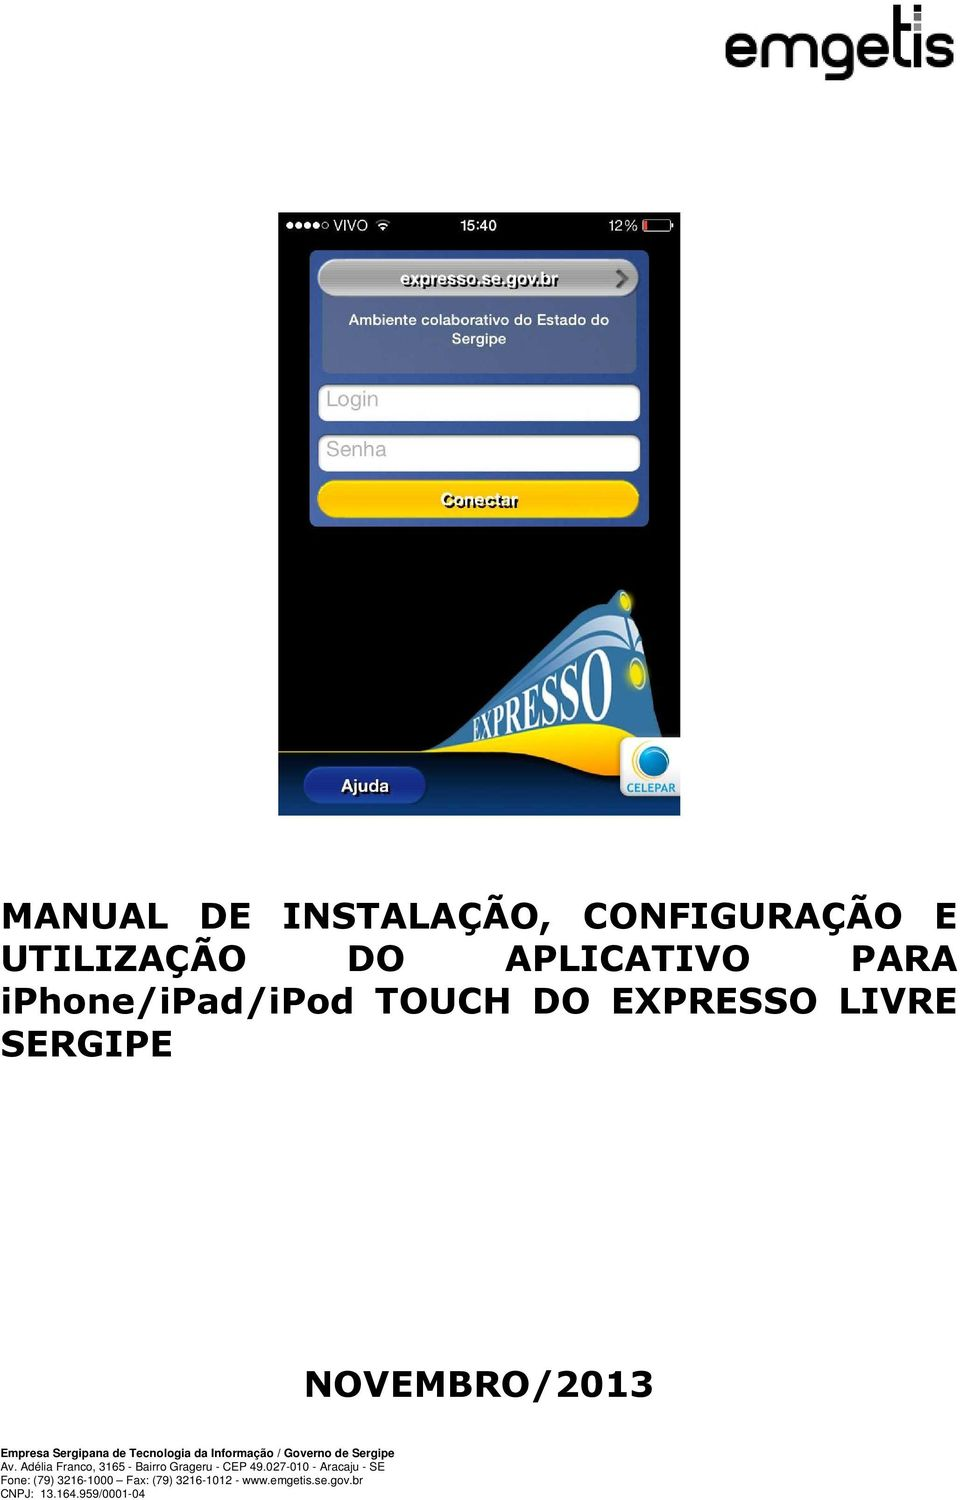 APLICATIVO PARA iphone/ipad/ipod